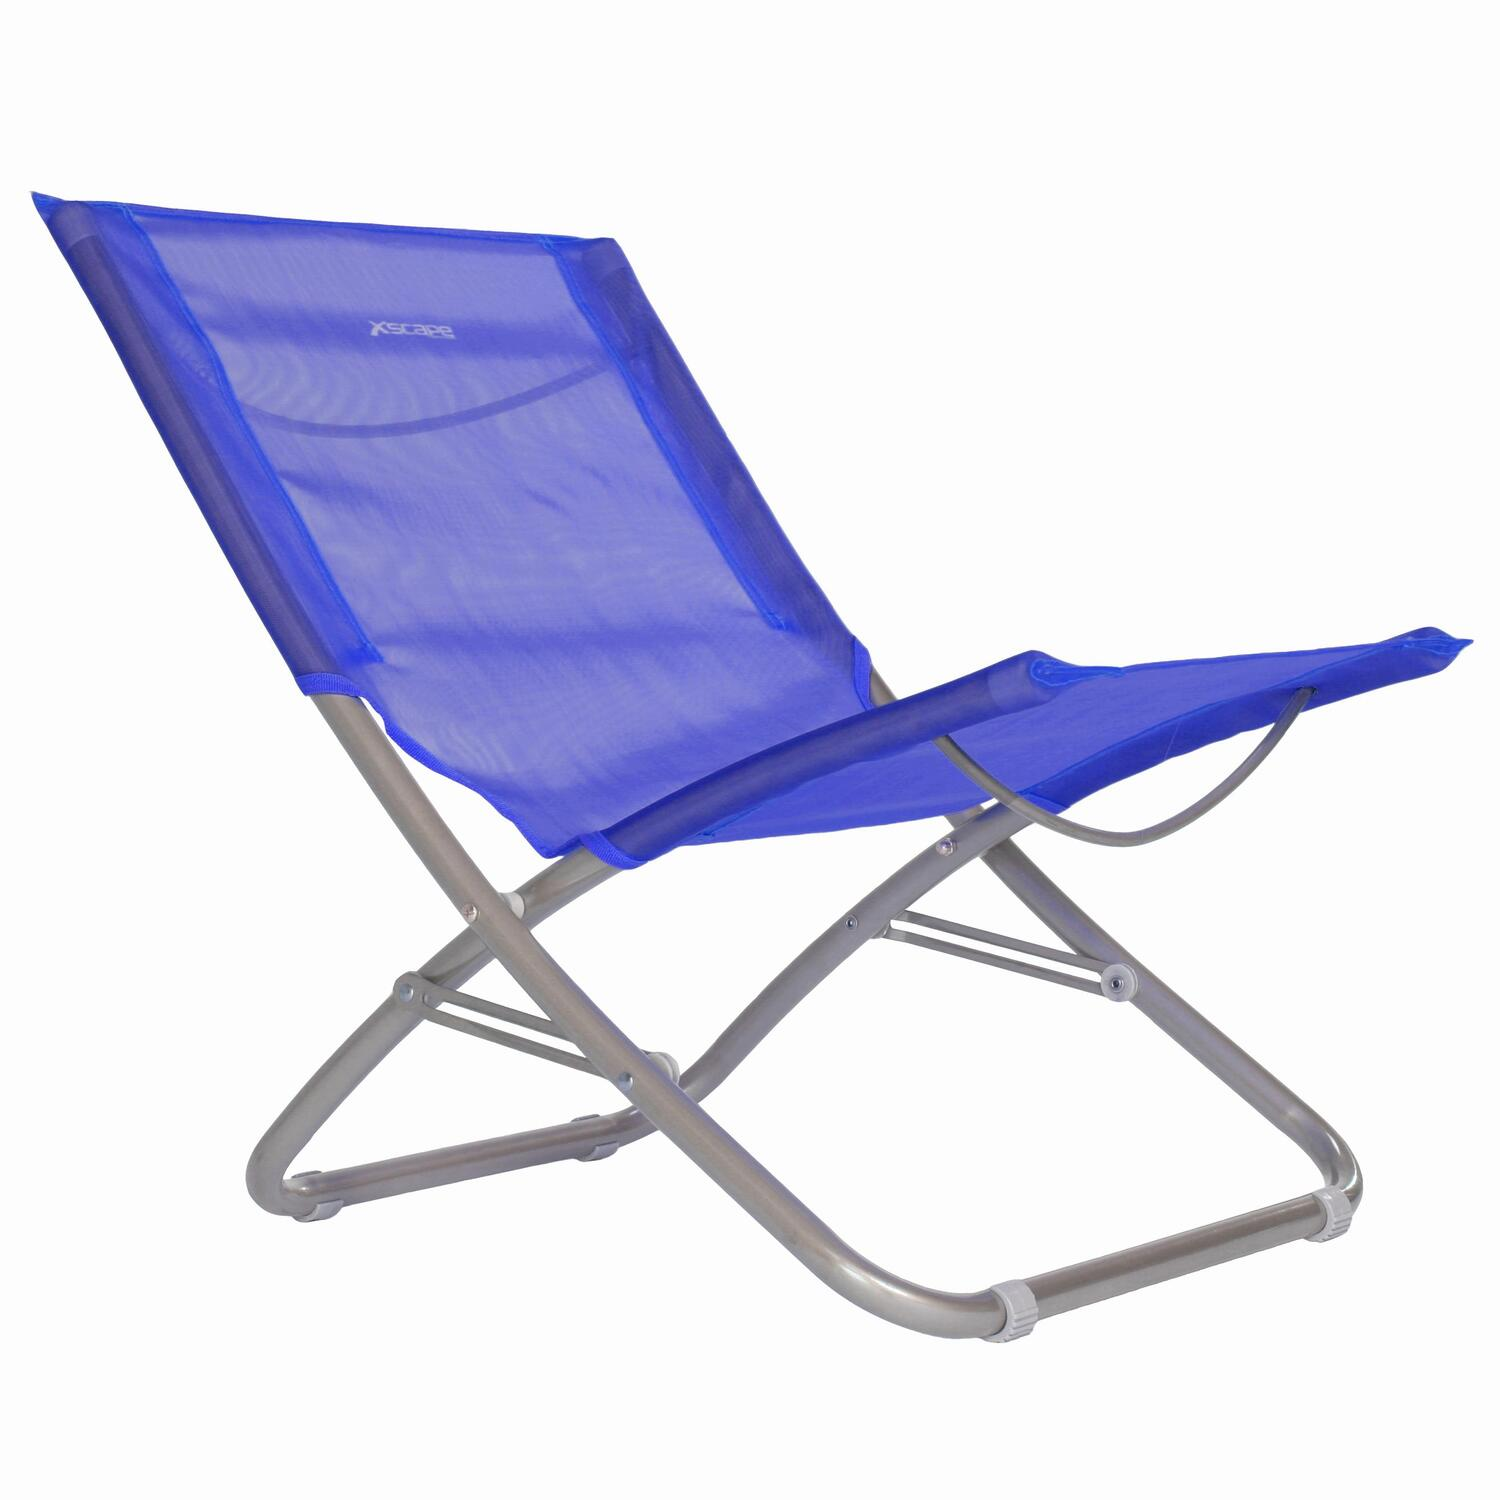 Creative 30  Low Profile Beach Chair